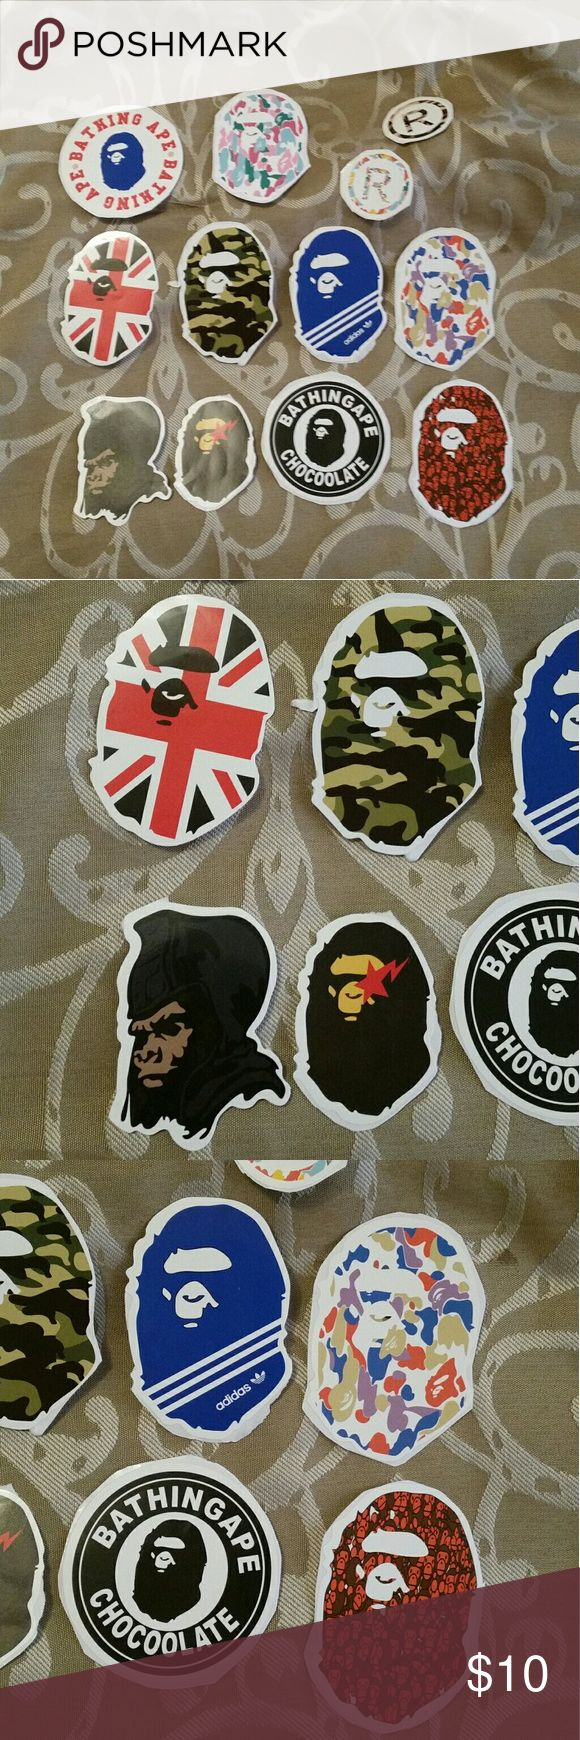 Bape stickers FREE SHIPPING THRU my website c1053t.com. Buyer gets 13 stickers. Supreme Other